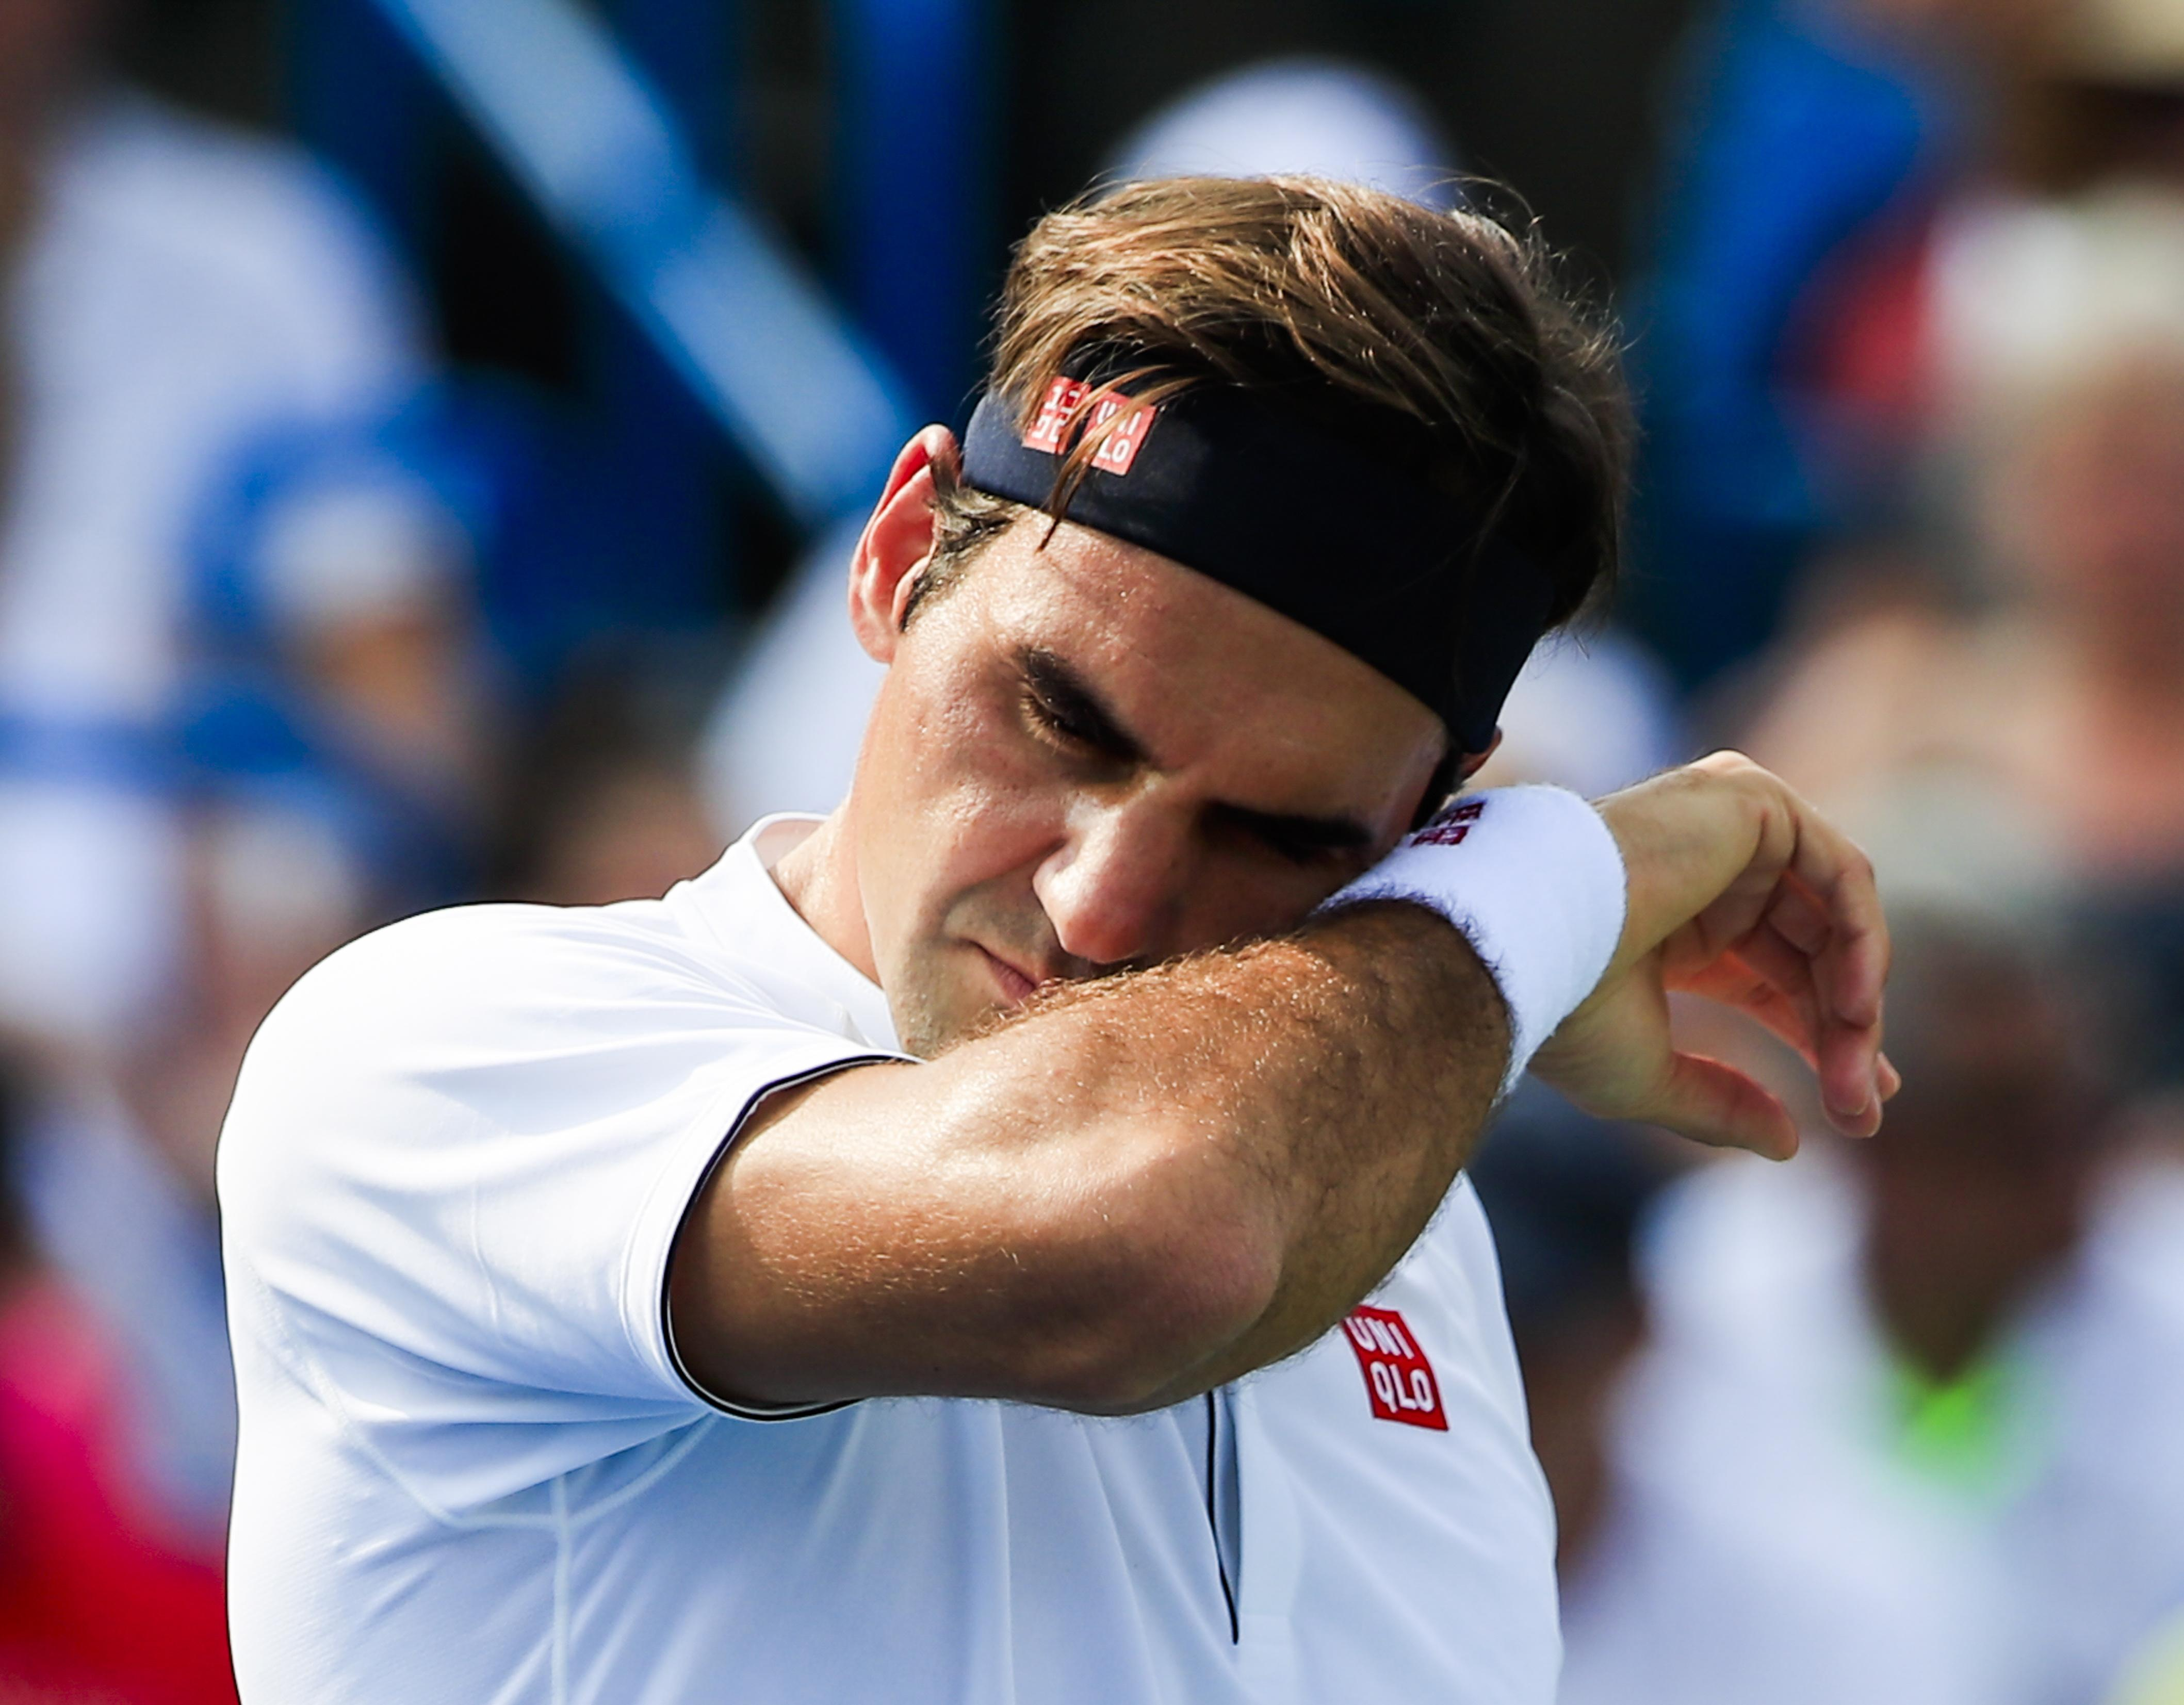 Federer made an uncharacteristic 39 unforced errors